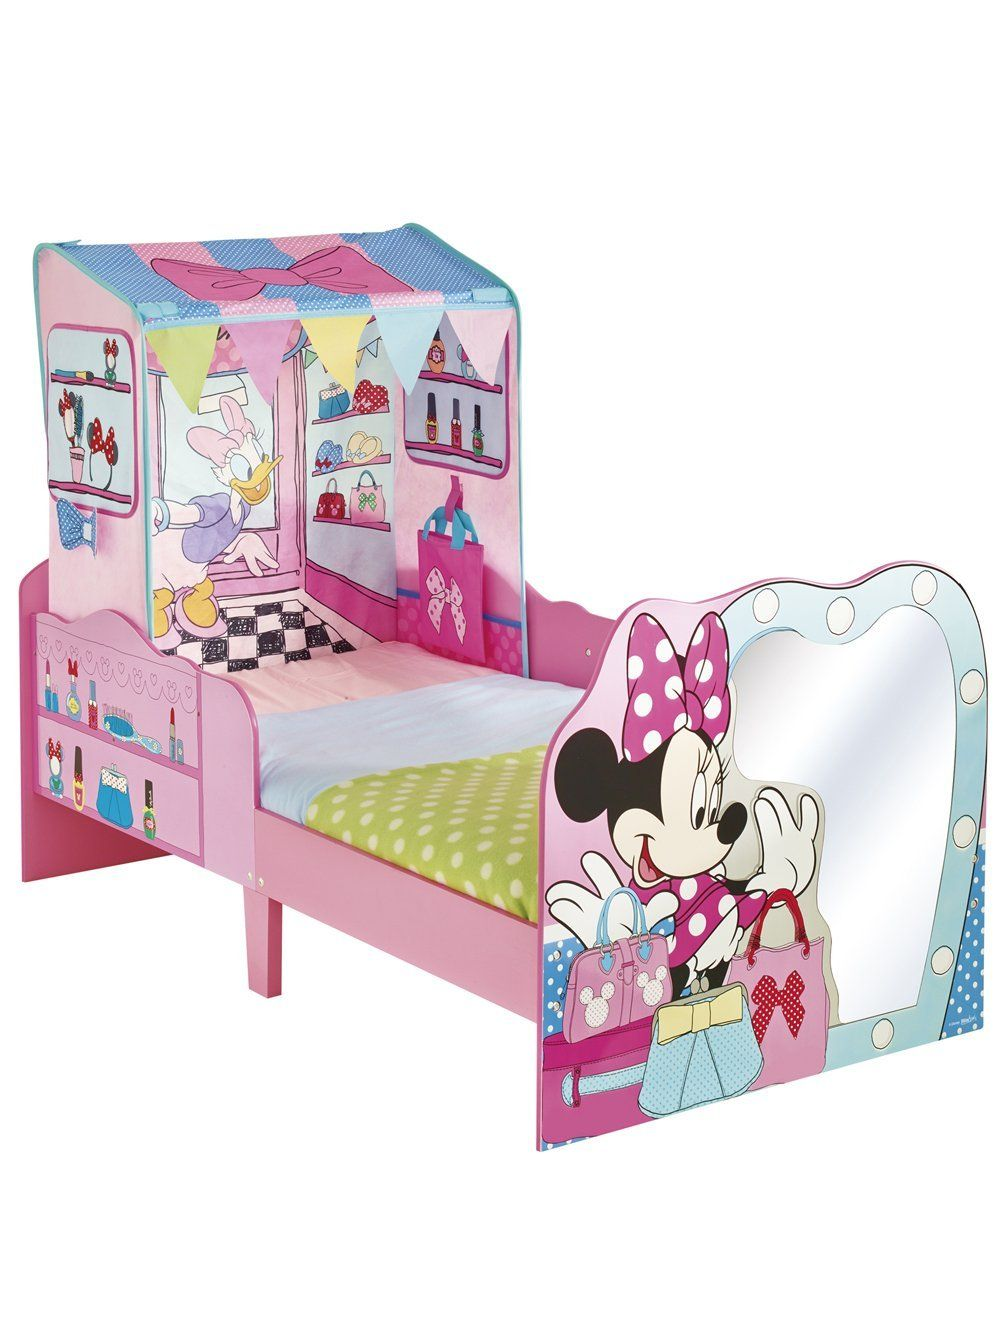 Disney Minnie Mouse Toddler Bed And Canopy By Hellohome Amazon Co